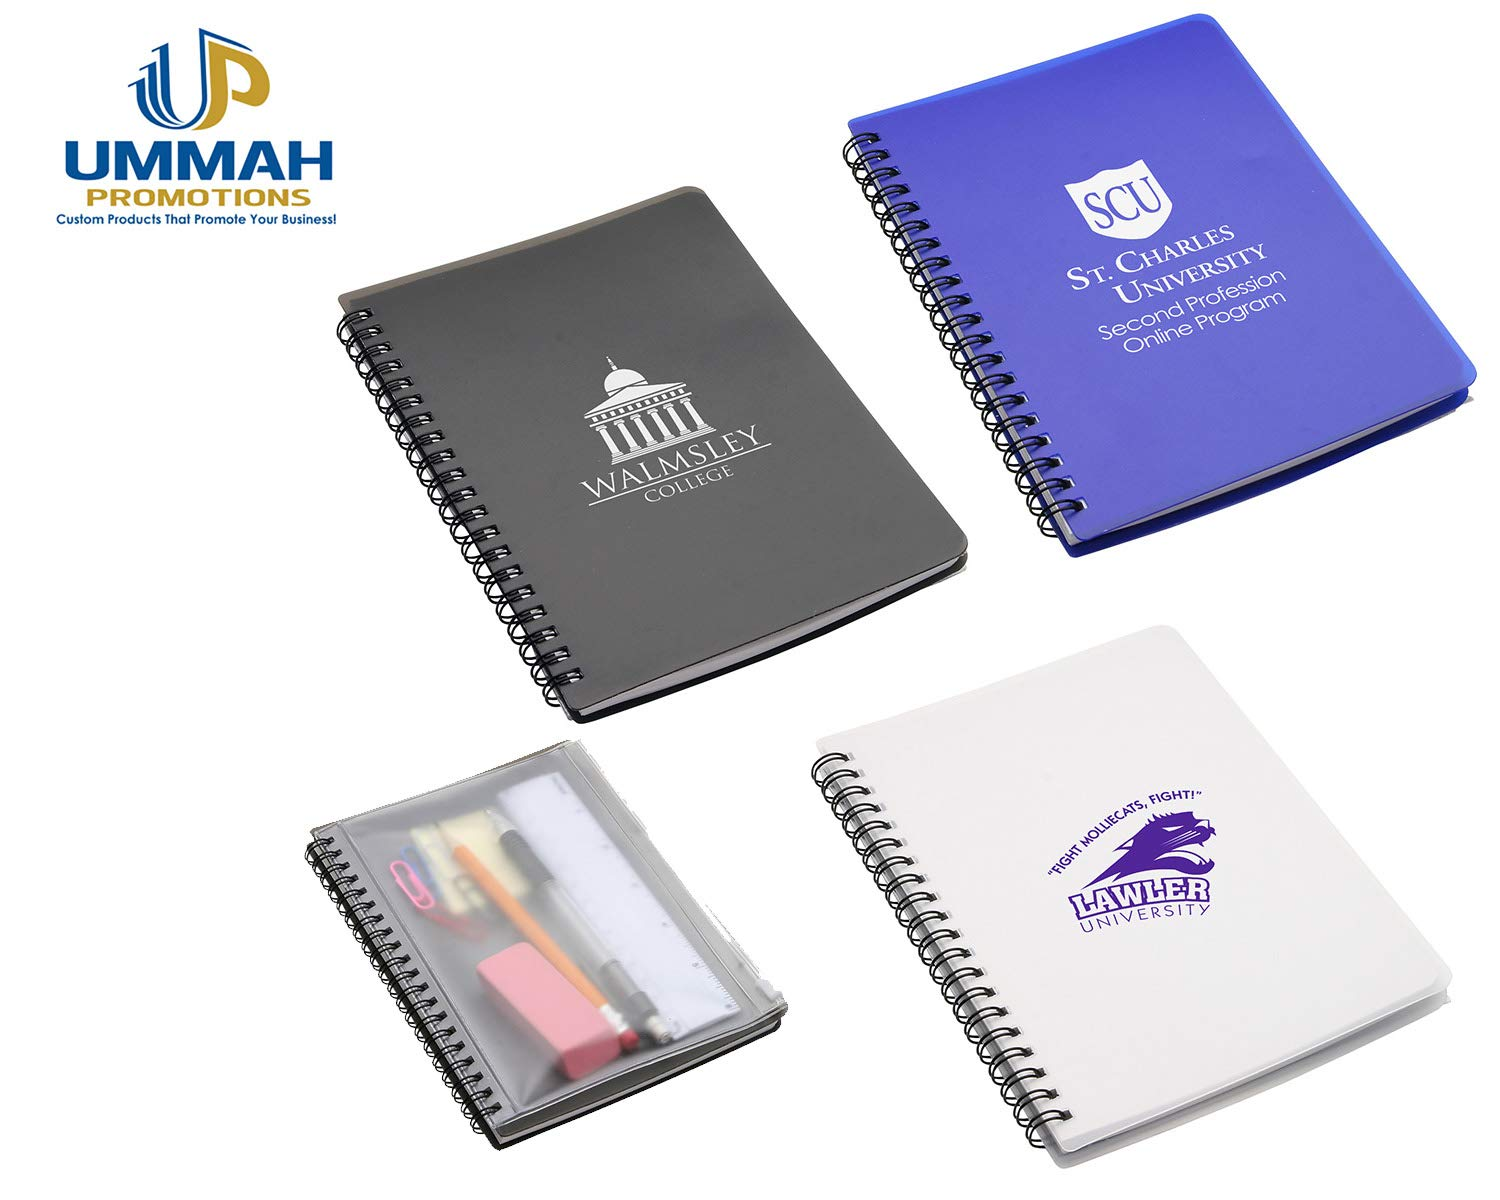 150 Personalized Hardcover Notebook With Pouch Printed With Your Logo Or Message